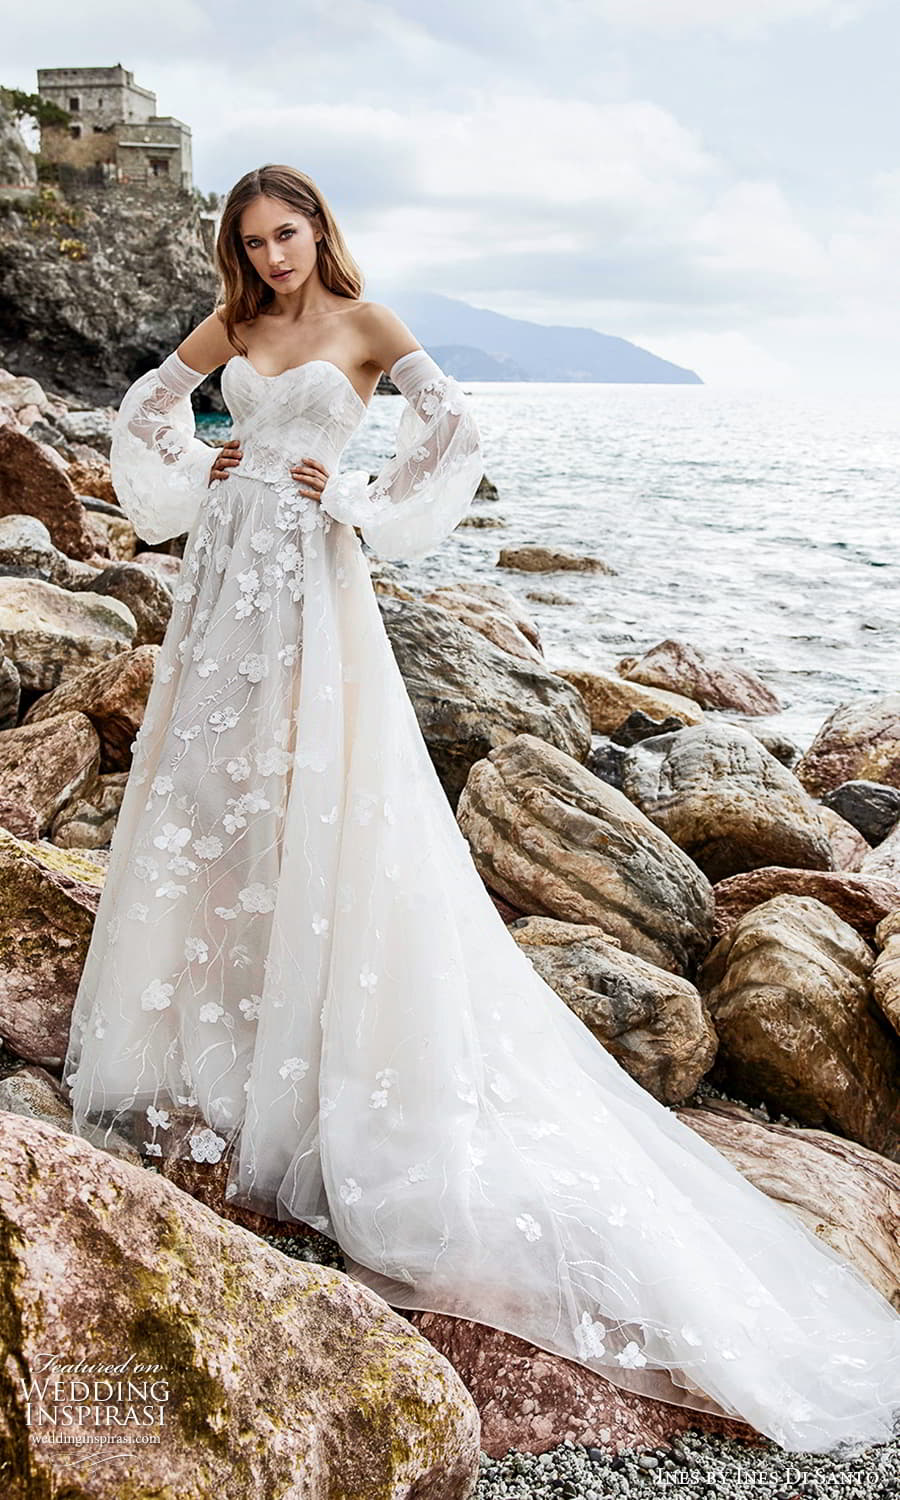 ines ines di santo spring 2022 bridal detached bishop sleeves strapless sweetheart neckline fully embellished a line ball gown wedding dress chapel train (1) mv